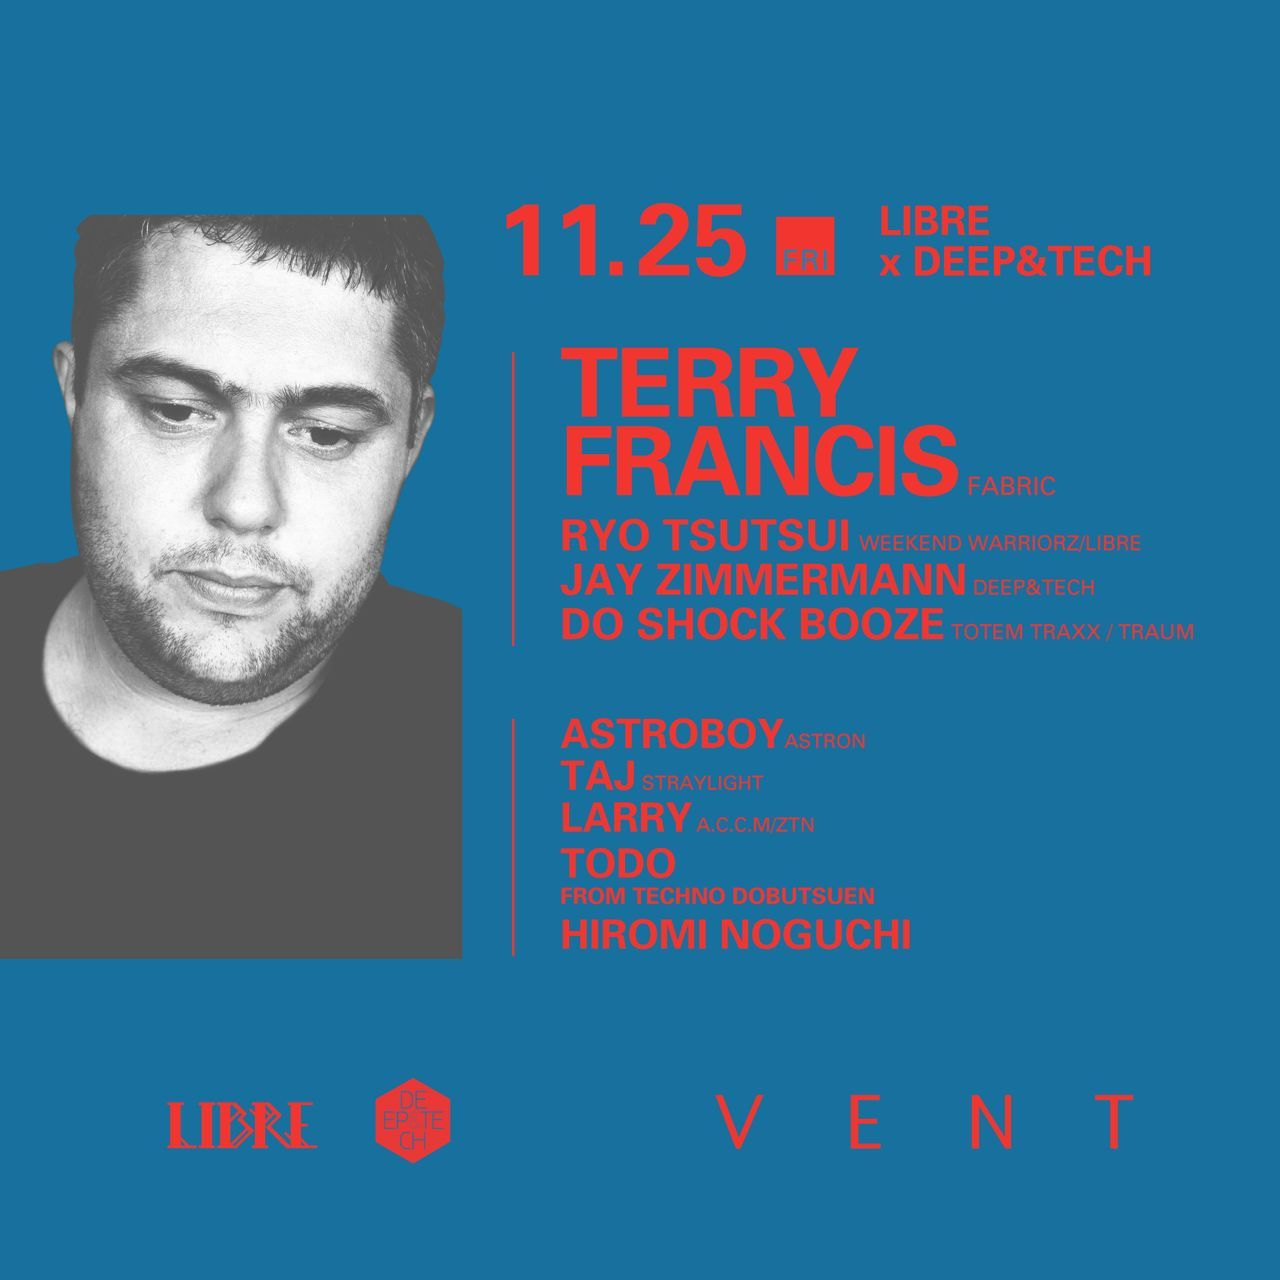 Libre×deep&tech presents Terry Francis